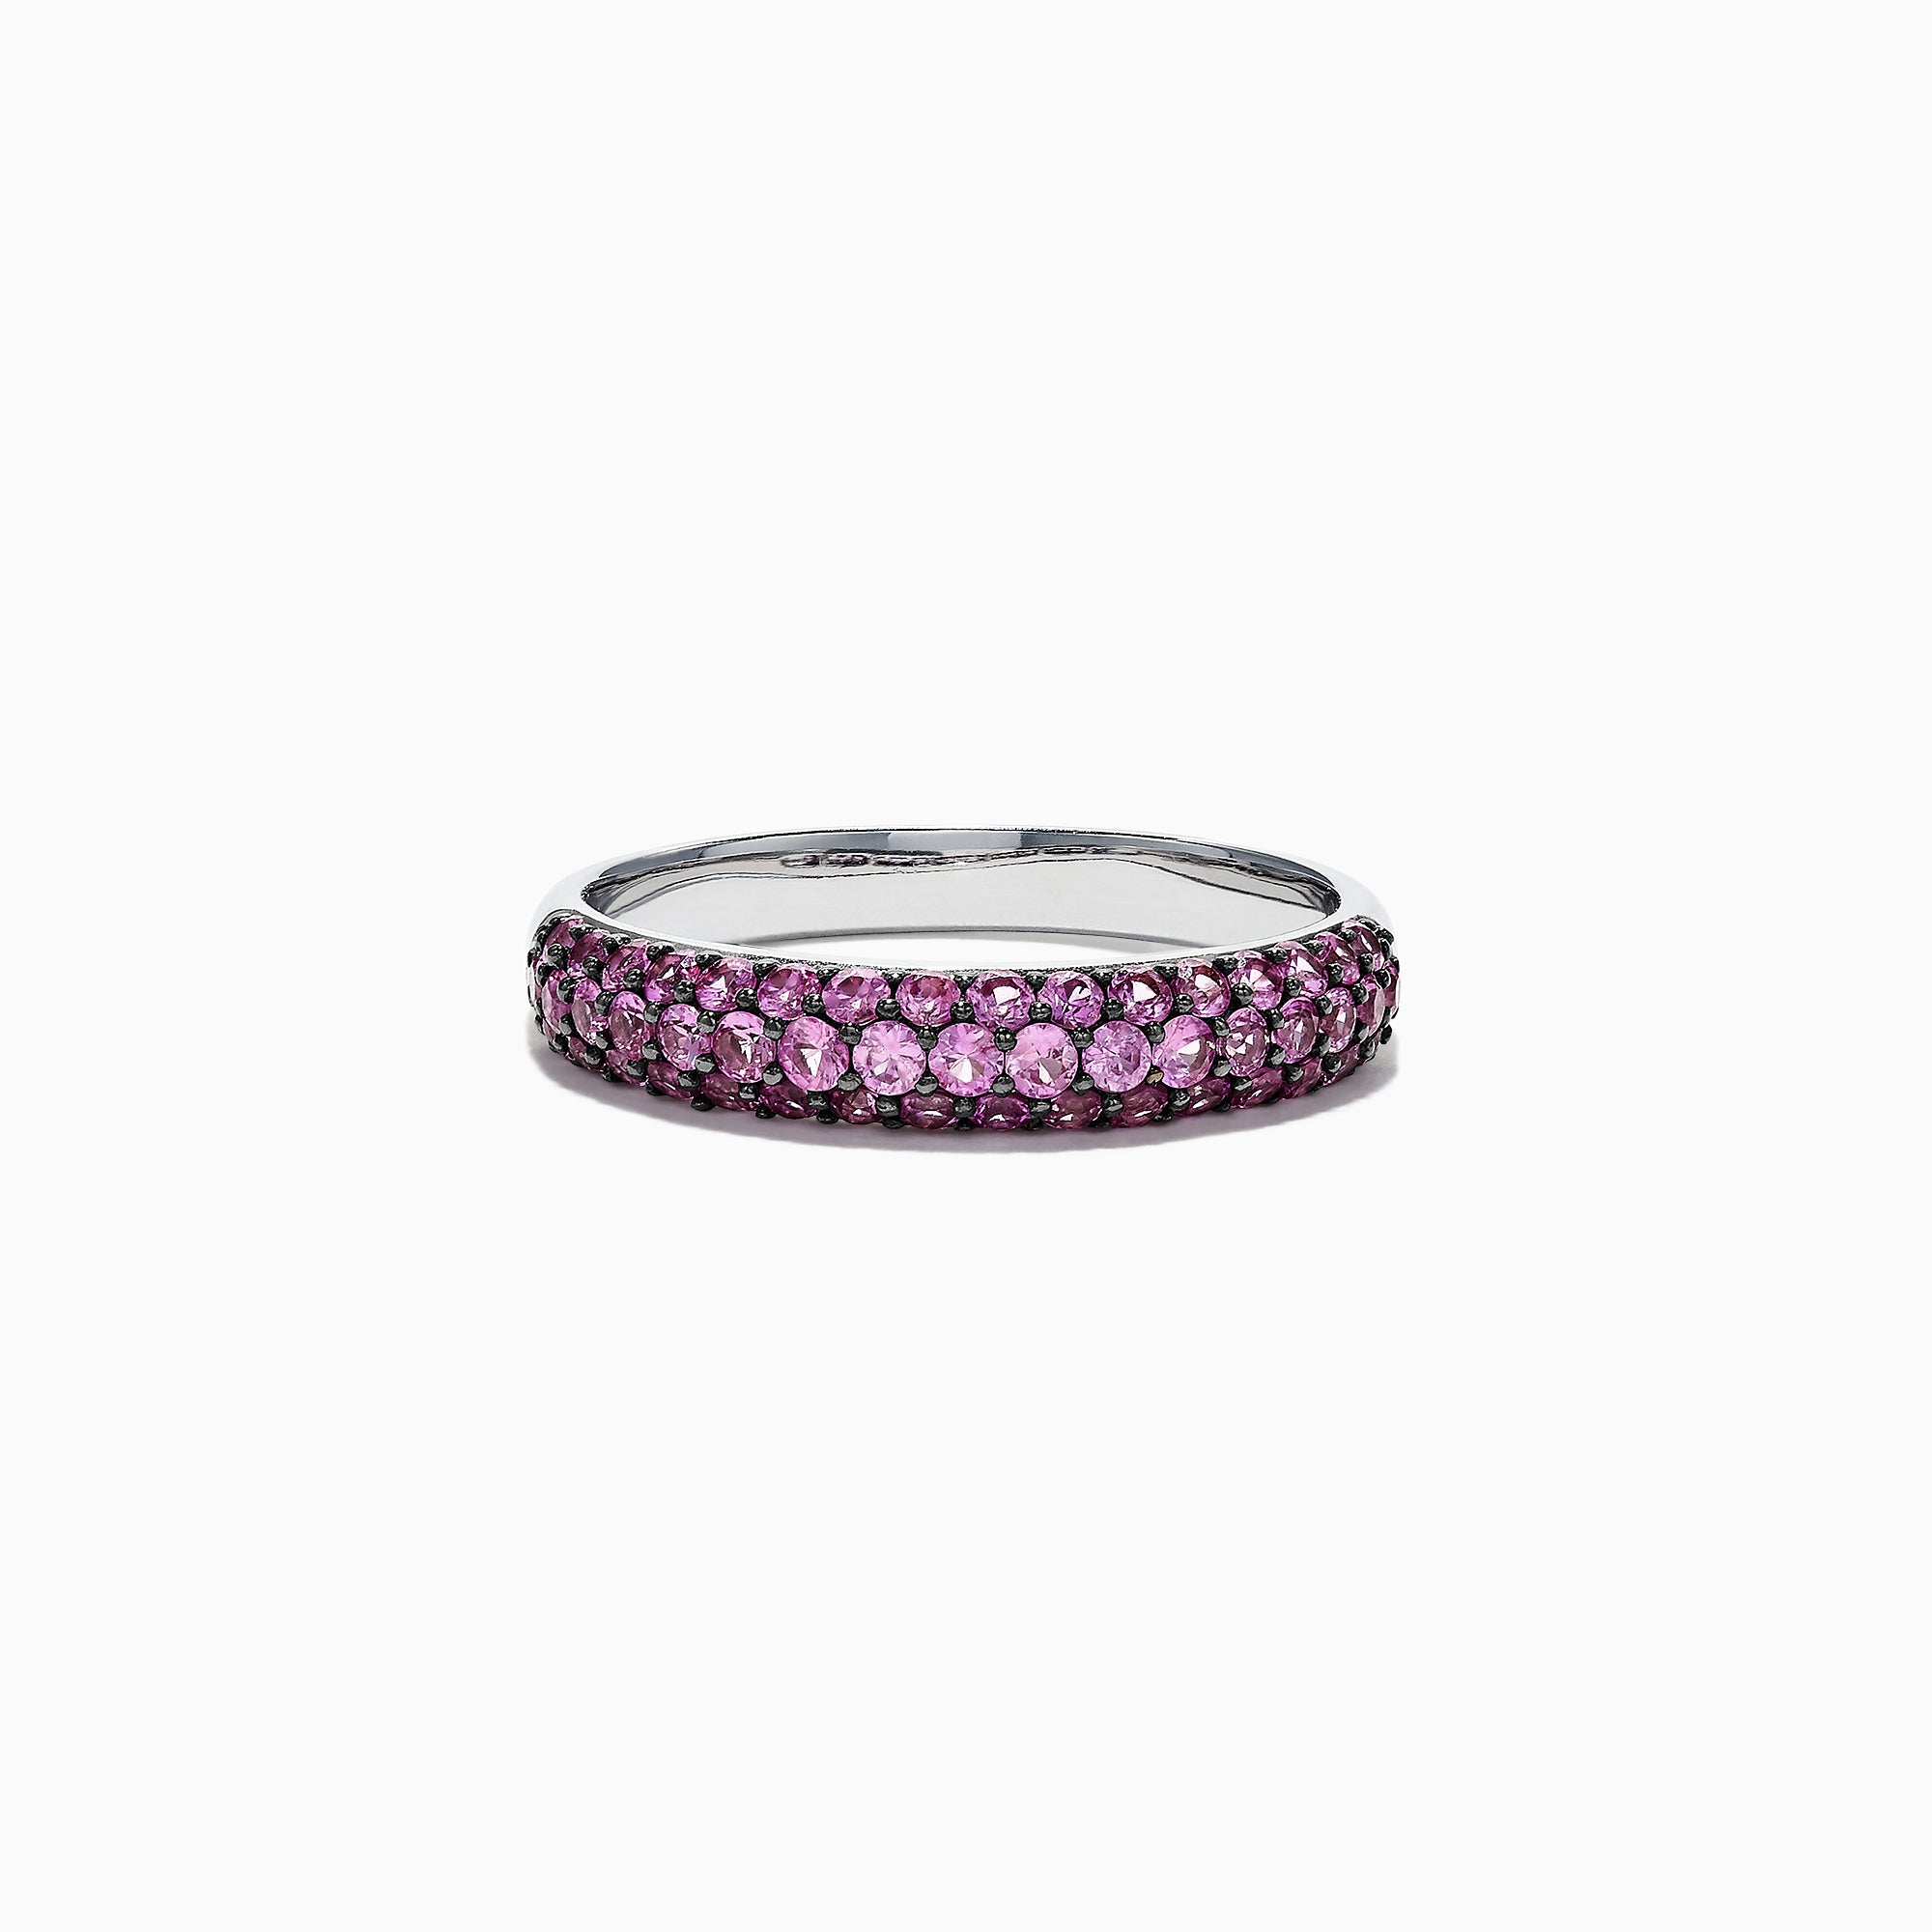 Effy 14K White Gold Pink Sapphire Ring, 0.77 TCW